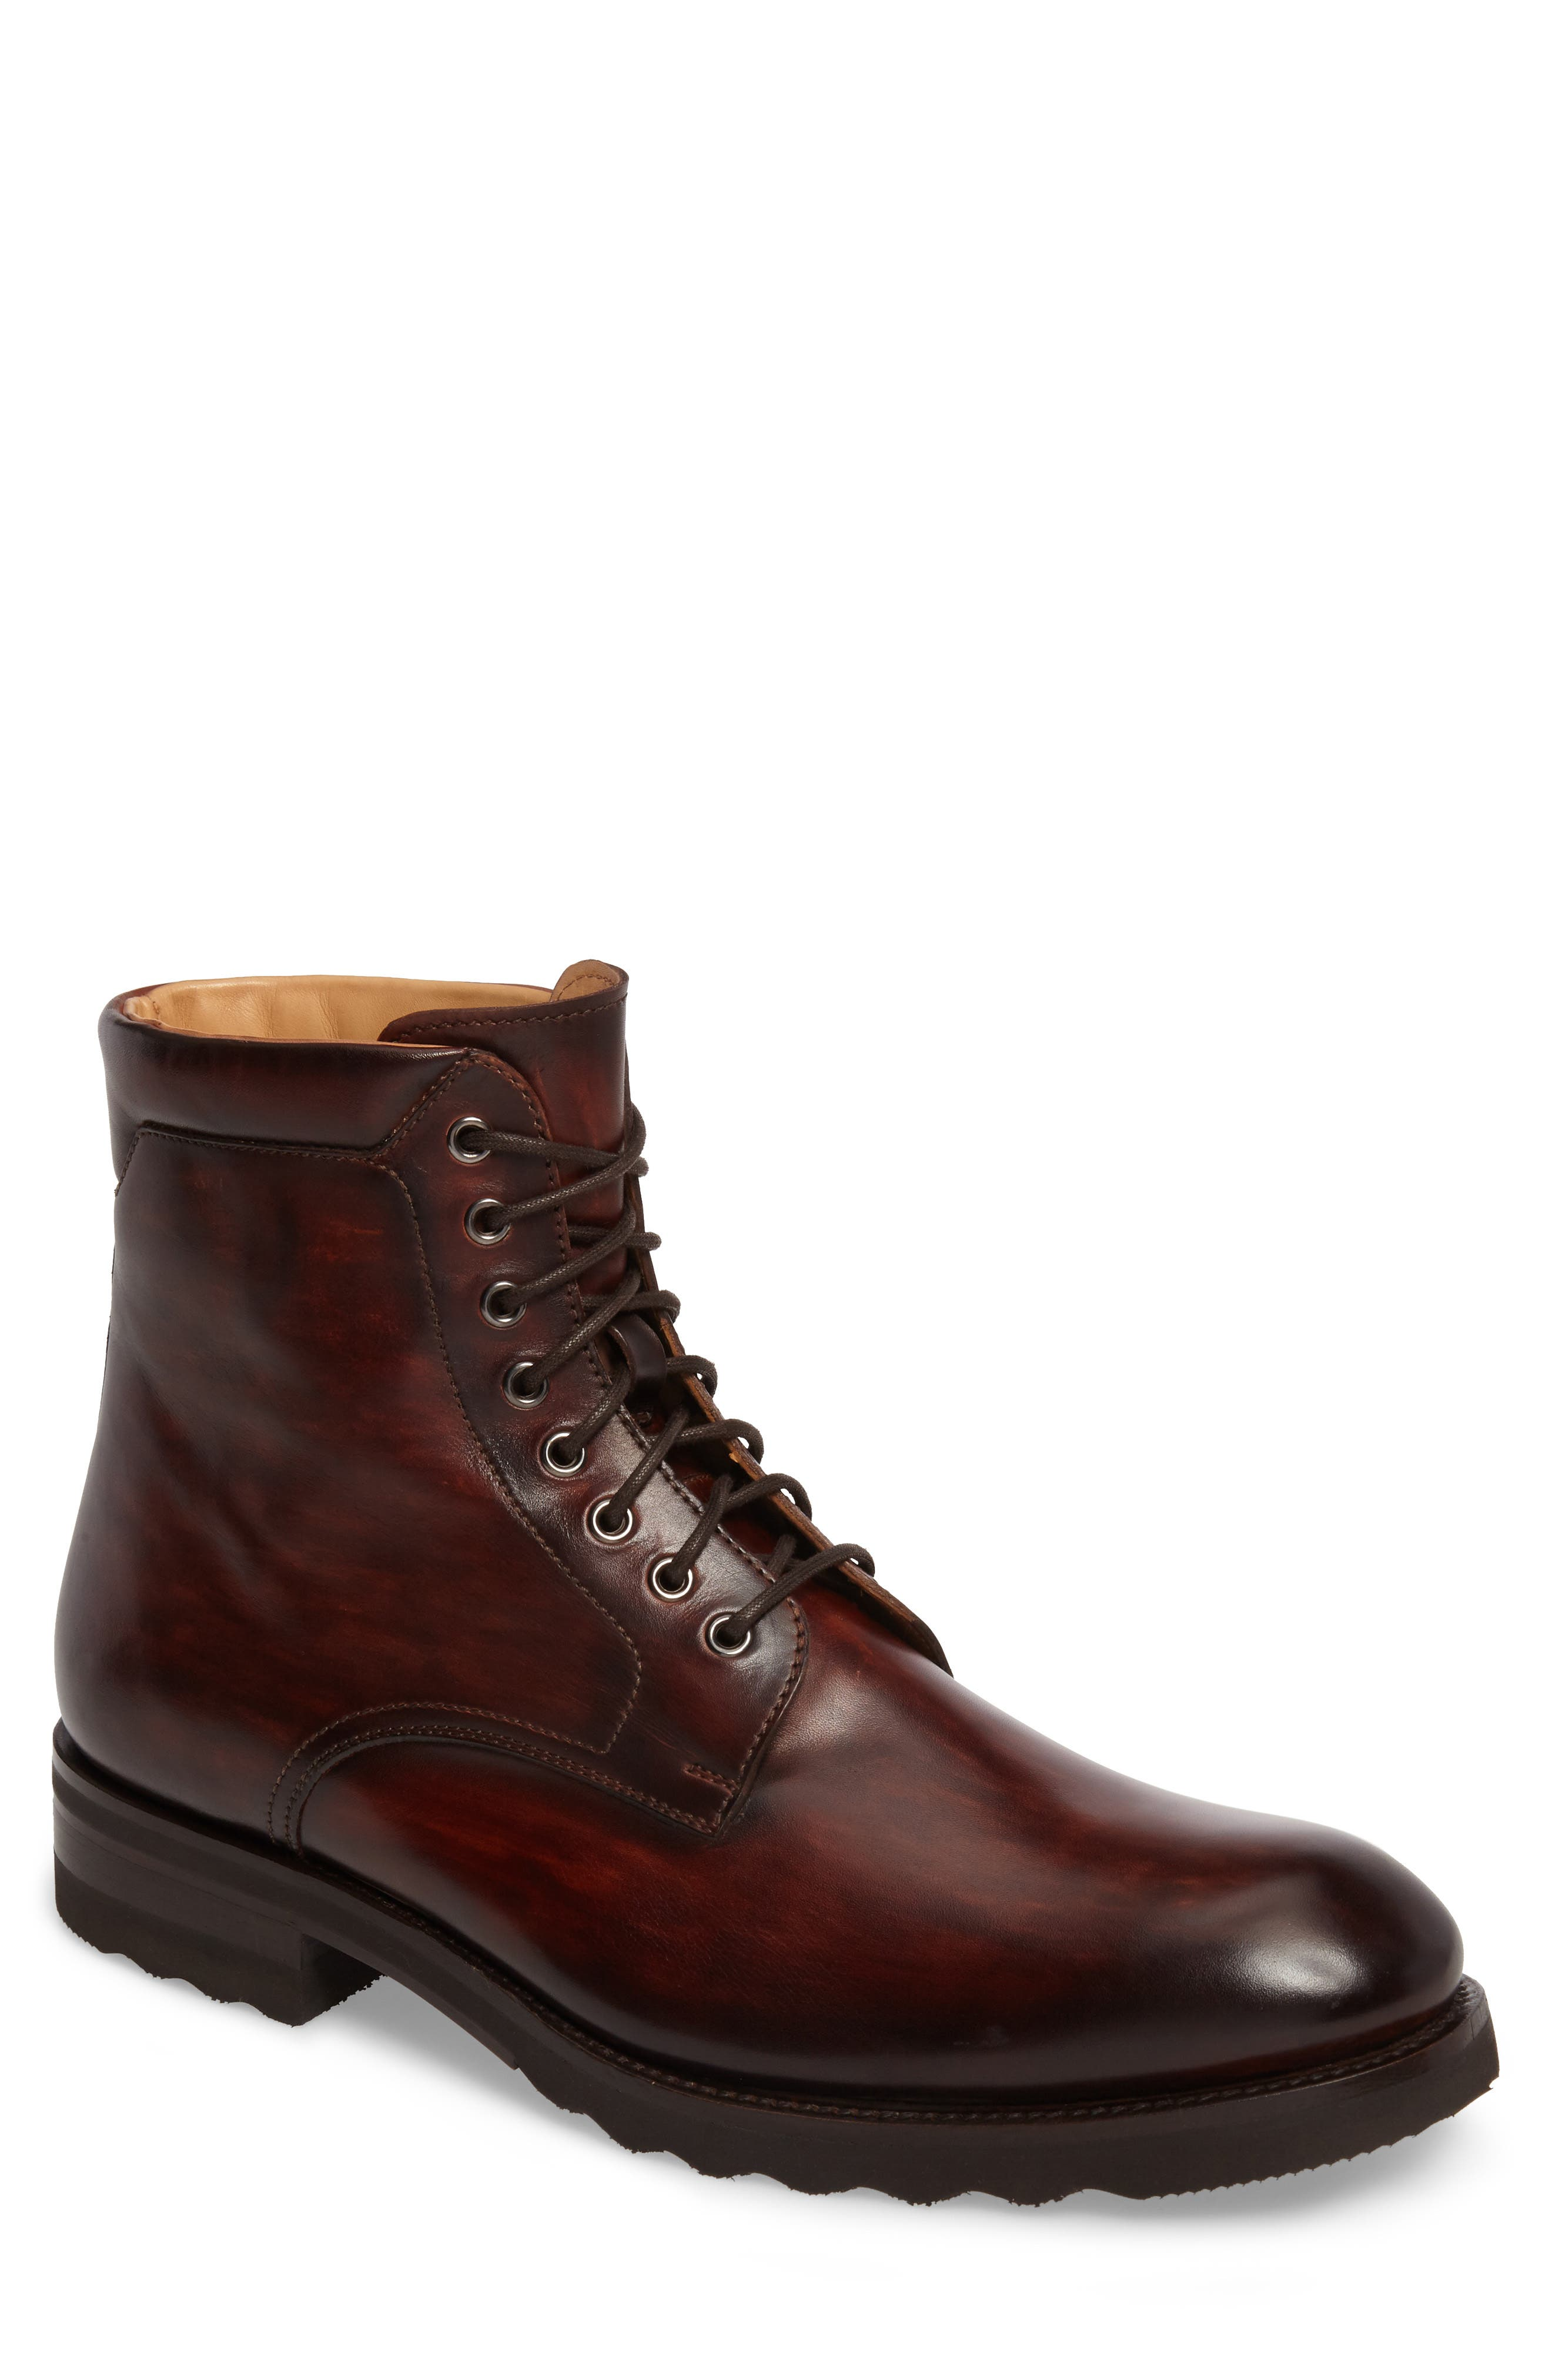 Saxon Plain Toe Boot,                         Main,                         color, Mid Brown Leather